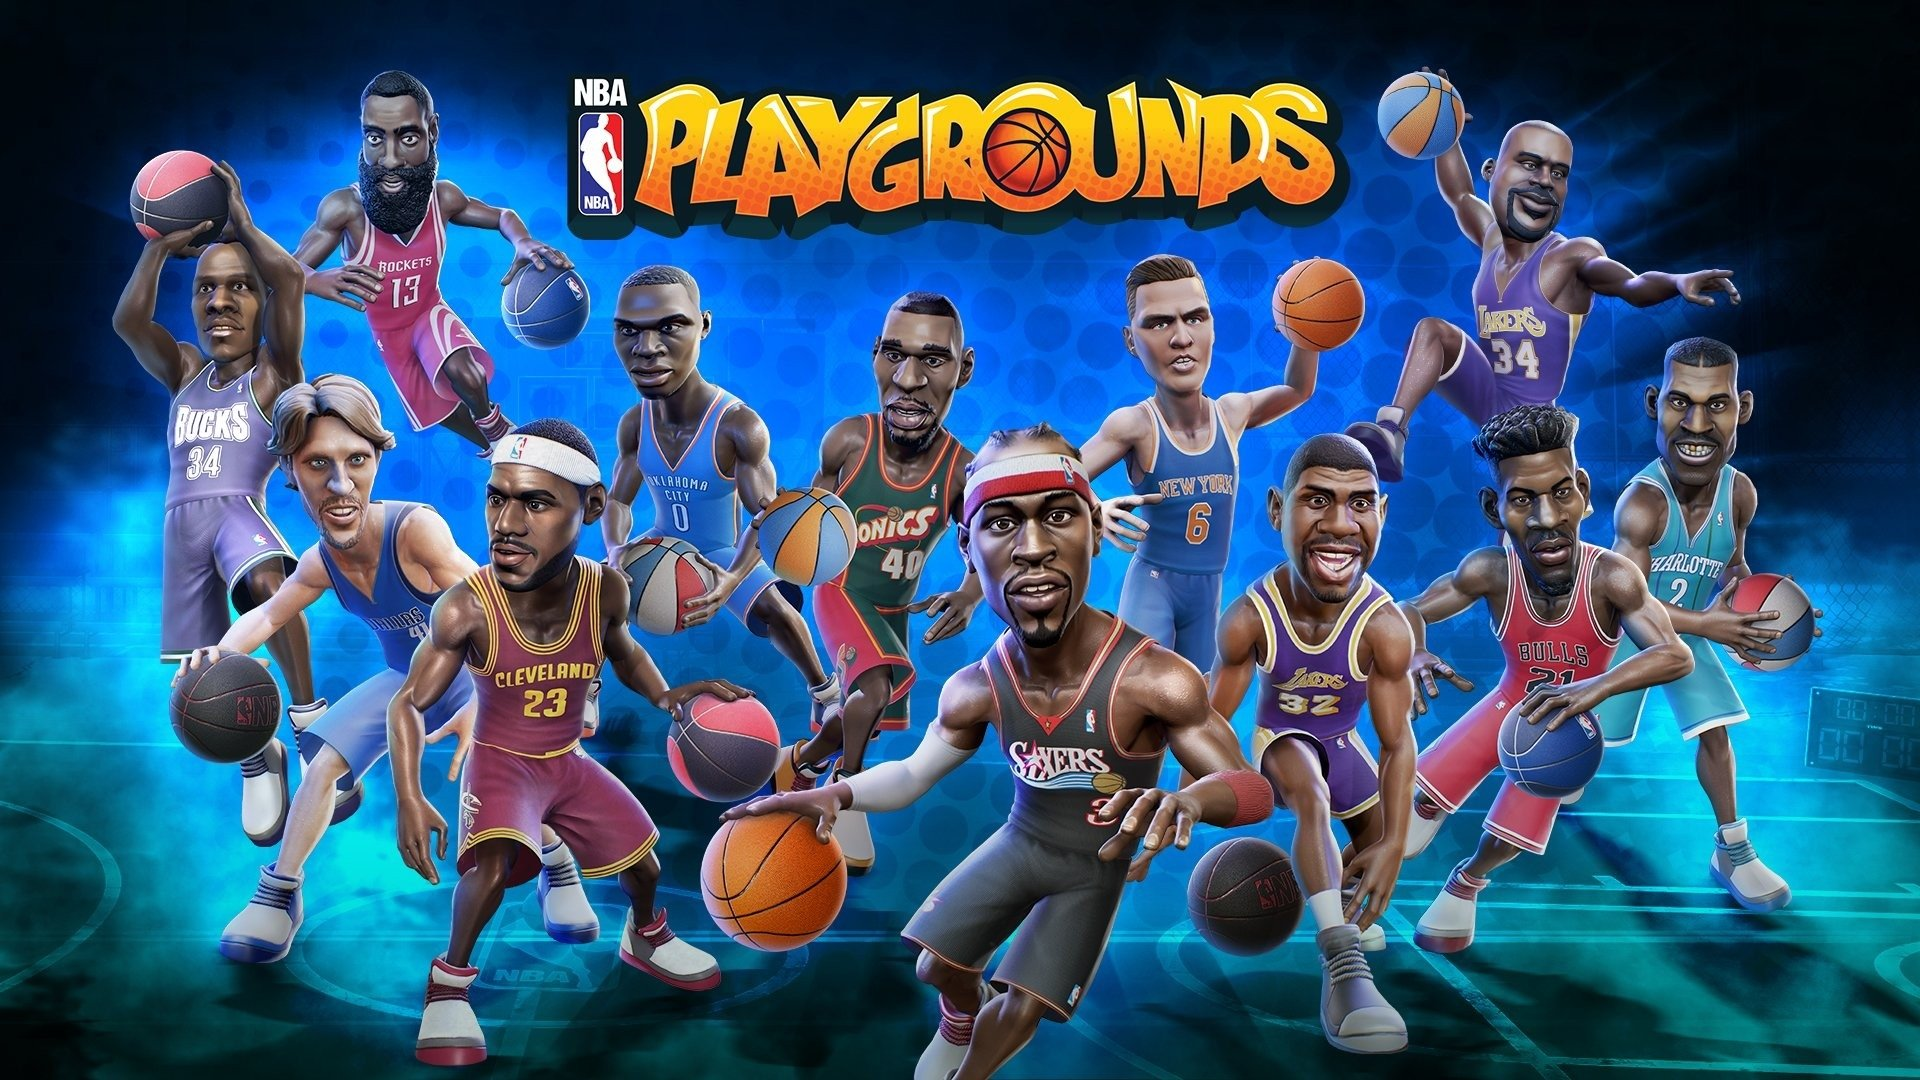 2 NBA Playgrounds HD Wallpapers